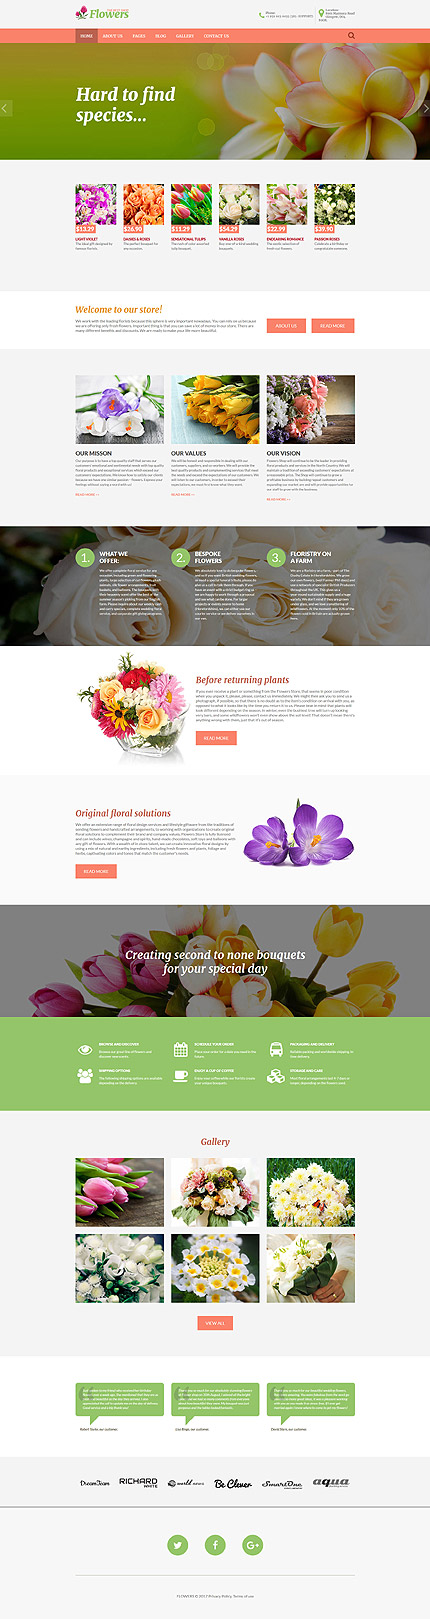 Flowers website inspirations at your coffee break? Browse for more Joomla #templates! // Regular price: $75 // Sources available: .PSD, .PHP #Flowers #Joomla